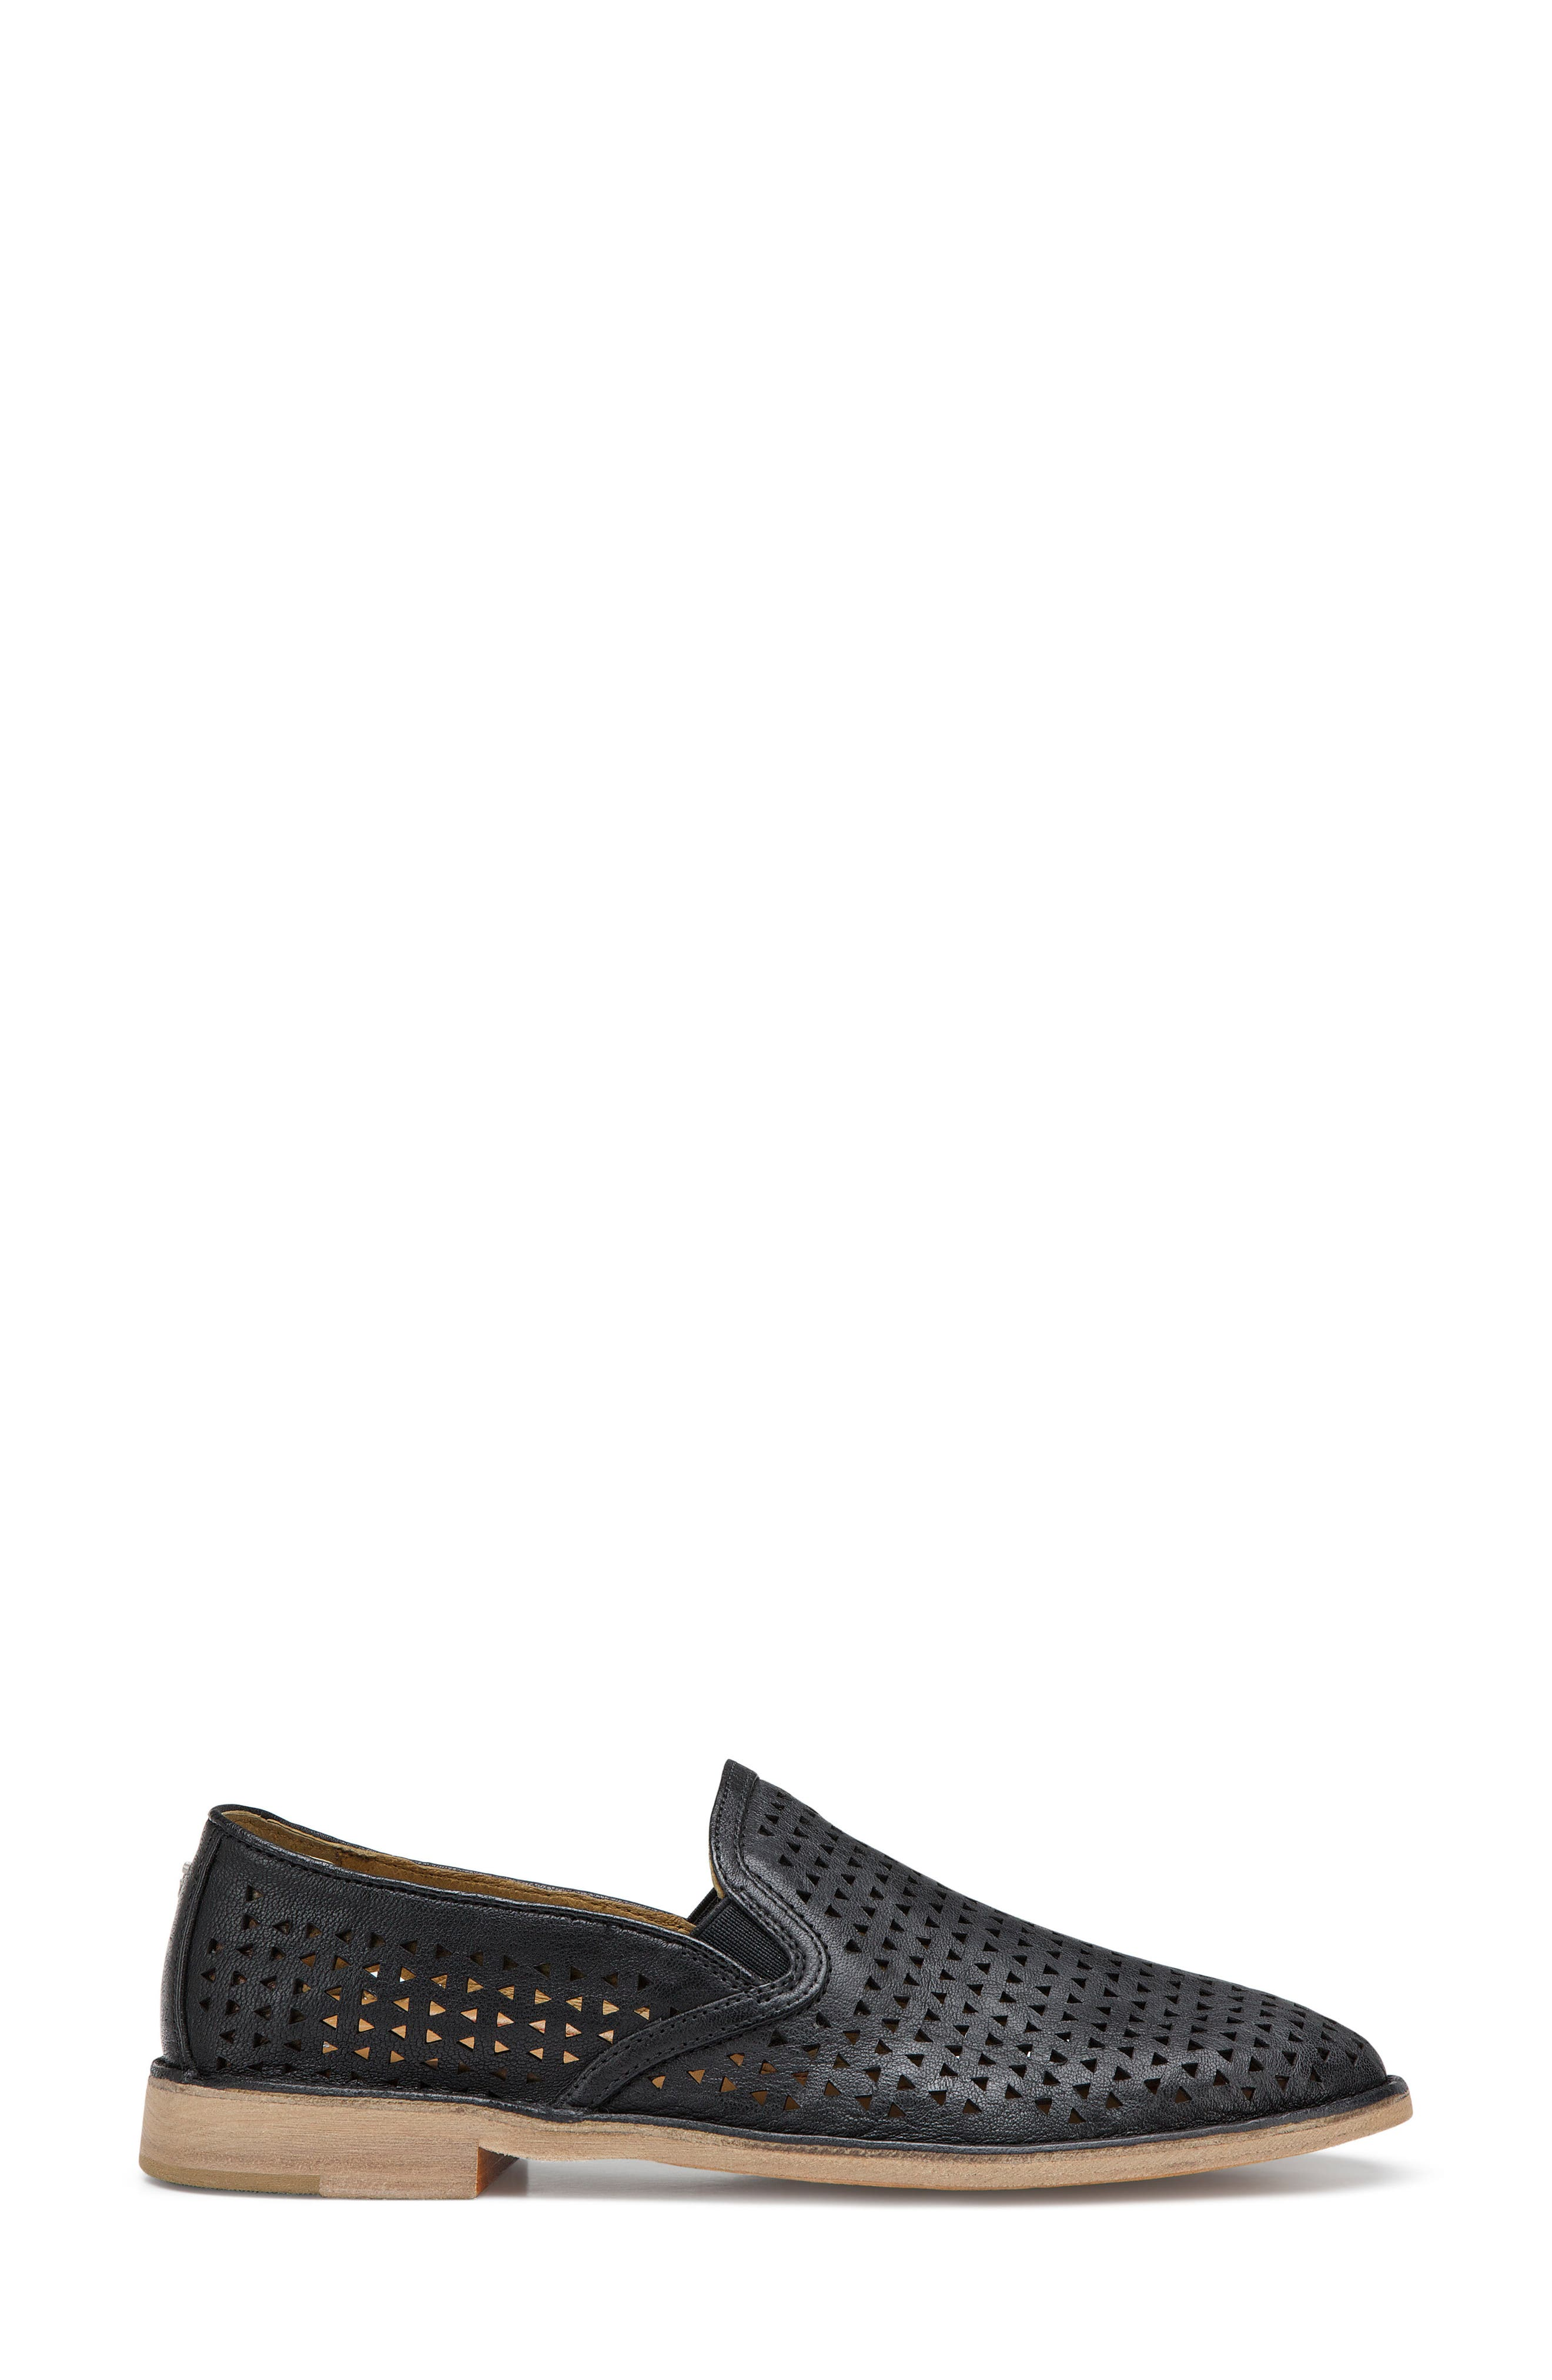 'Ali' Perforated Loafer,                             Alternate thumbnail 3, color,                             Black Leather